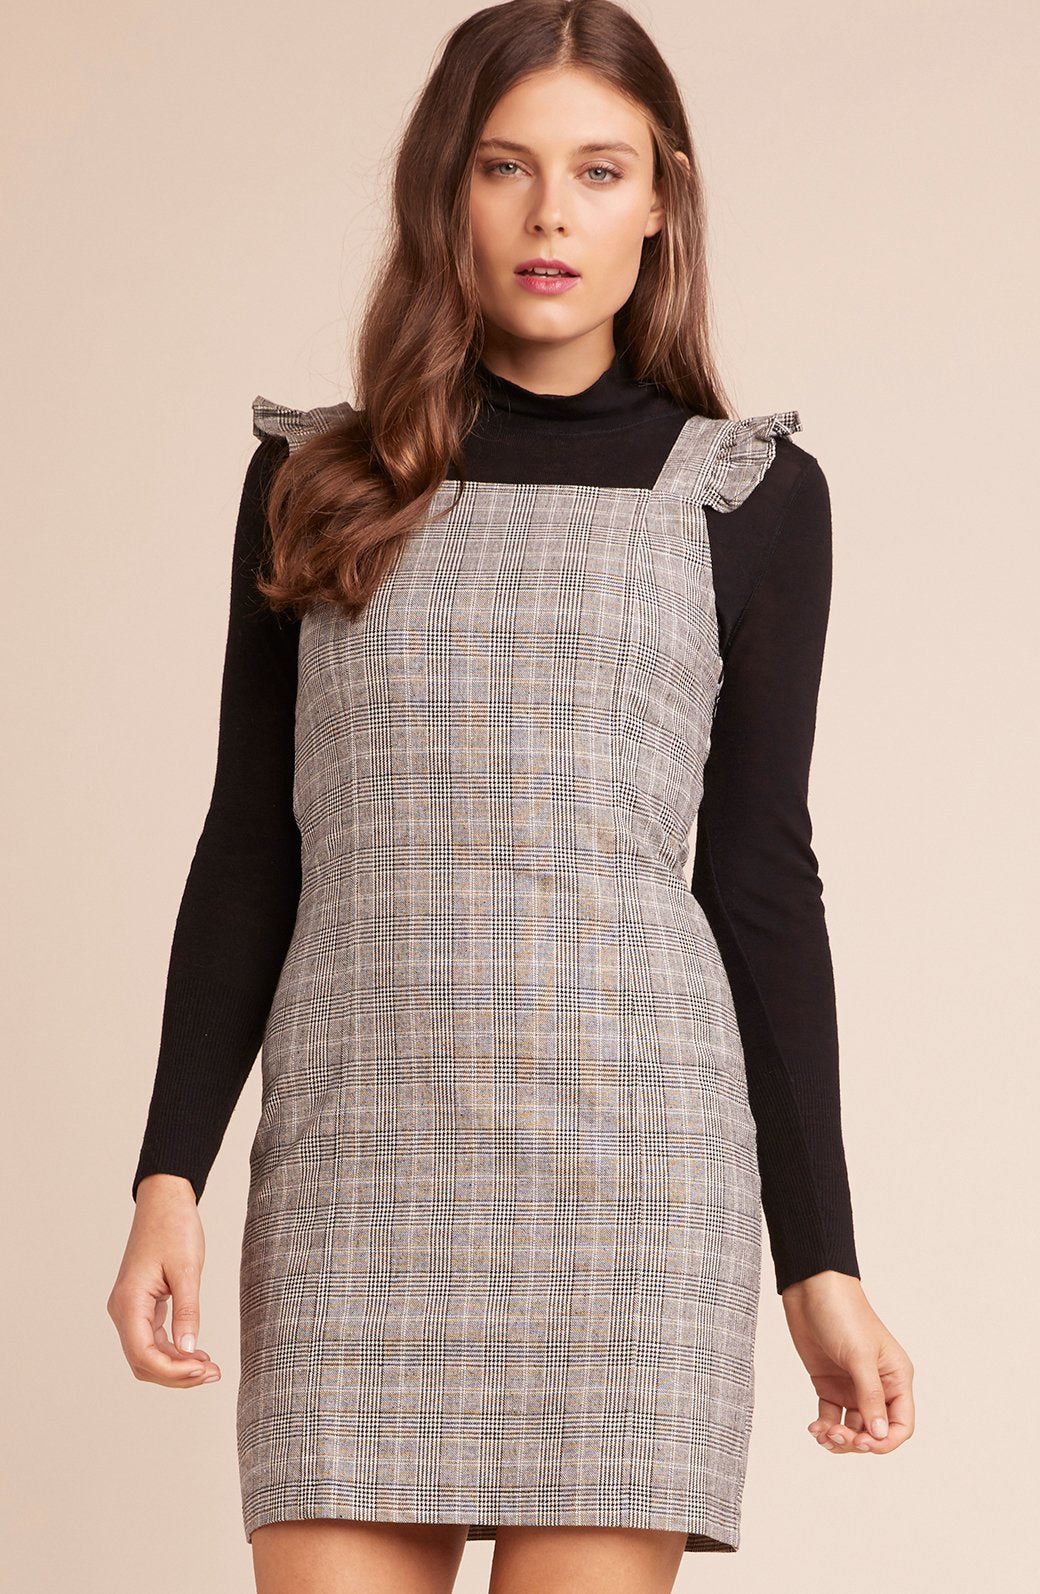 Plaid Dress with Ruffle Strap